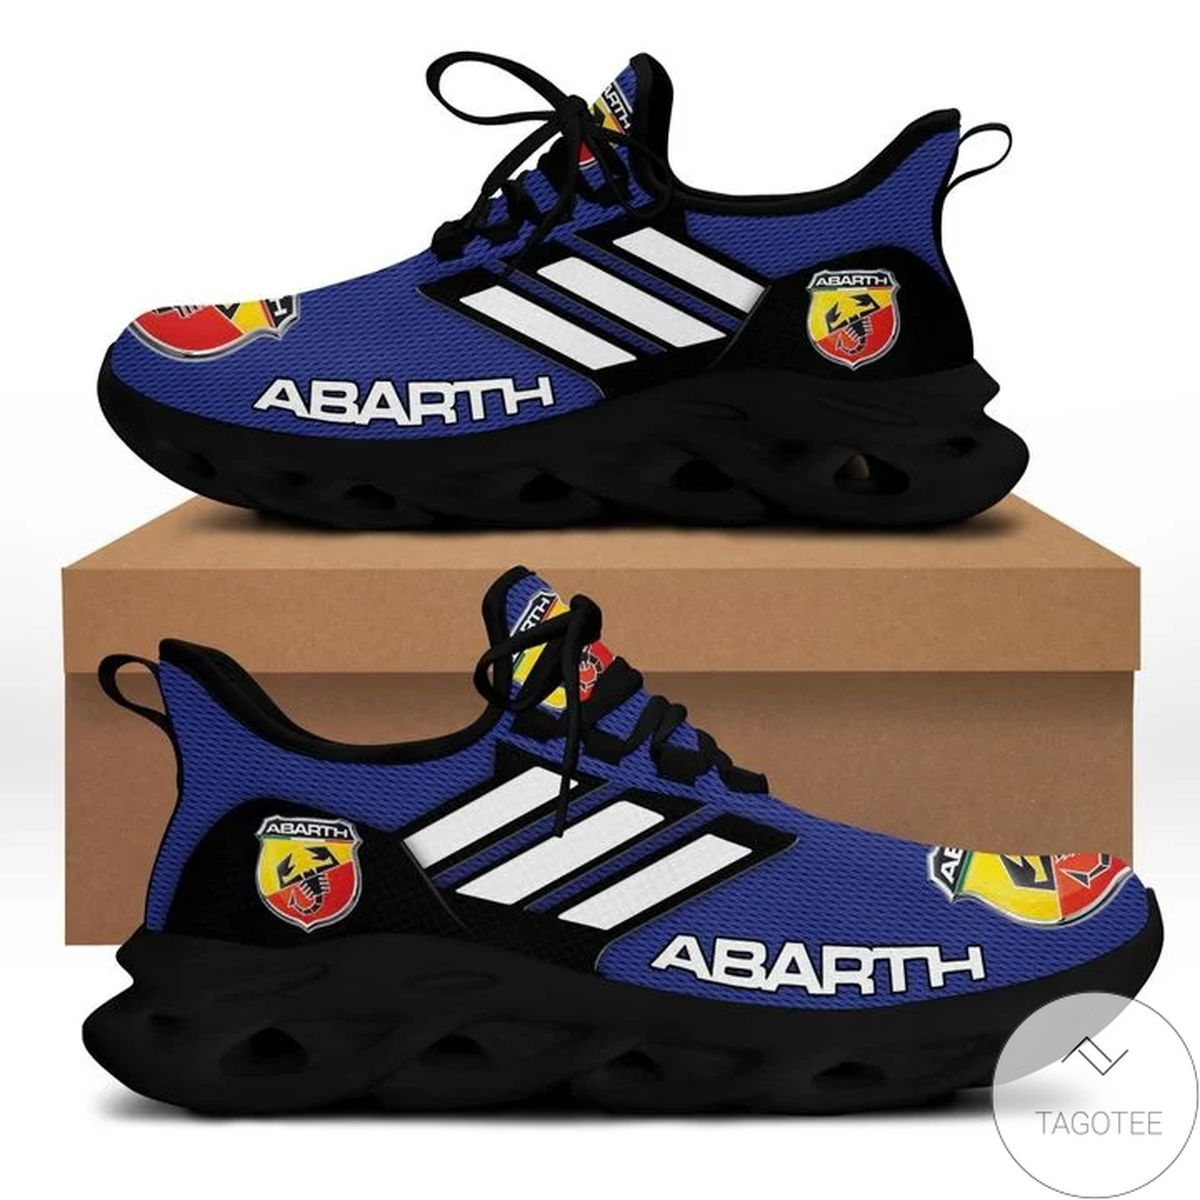 Abarth Yeezy Running Sneaker Max Soul Shoes